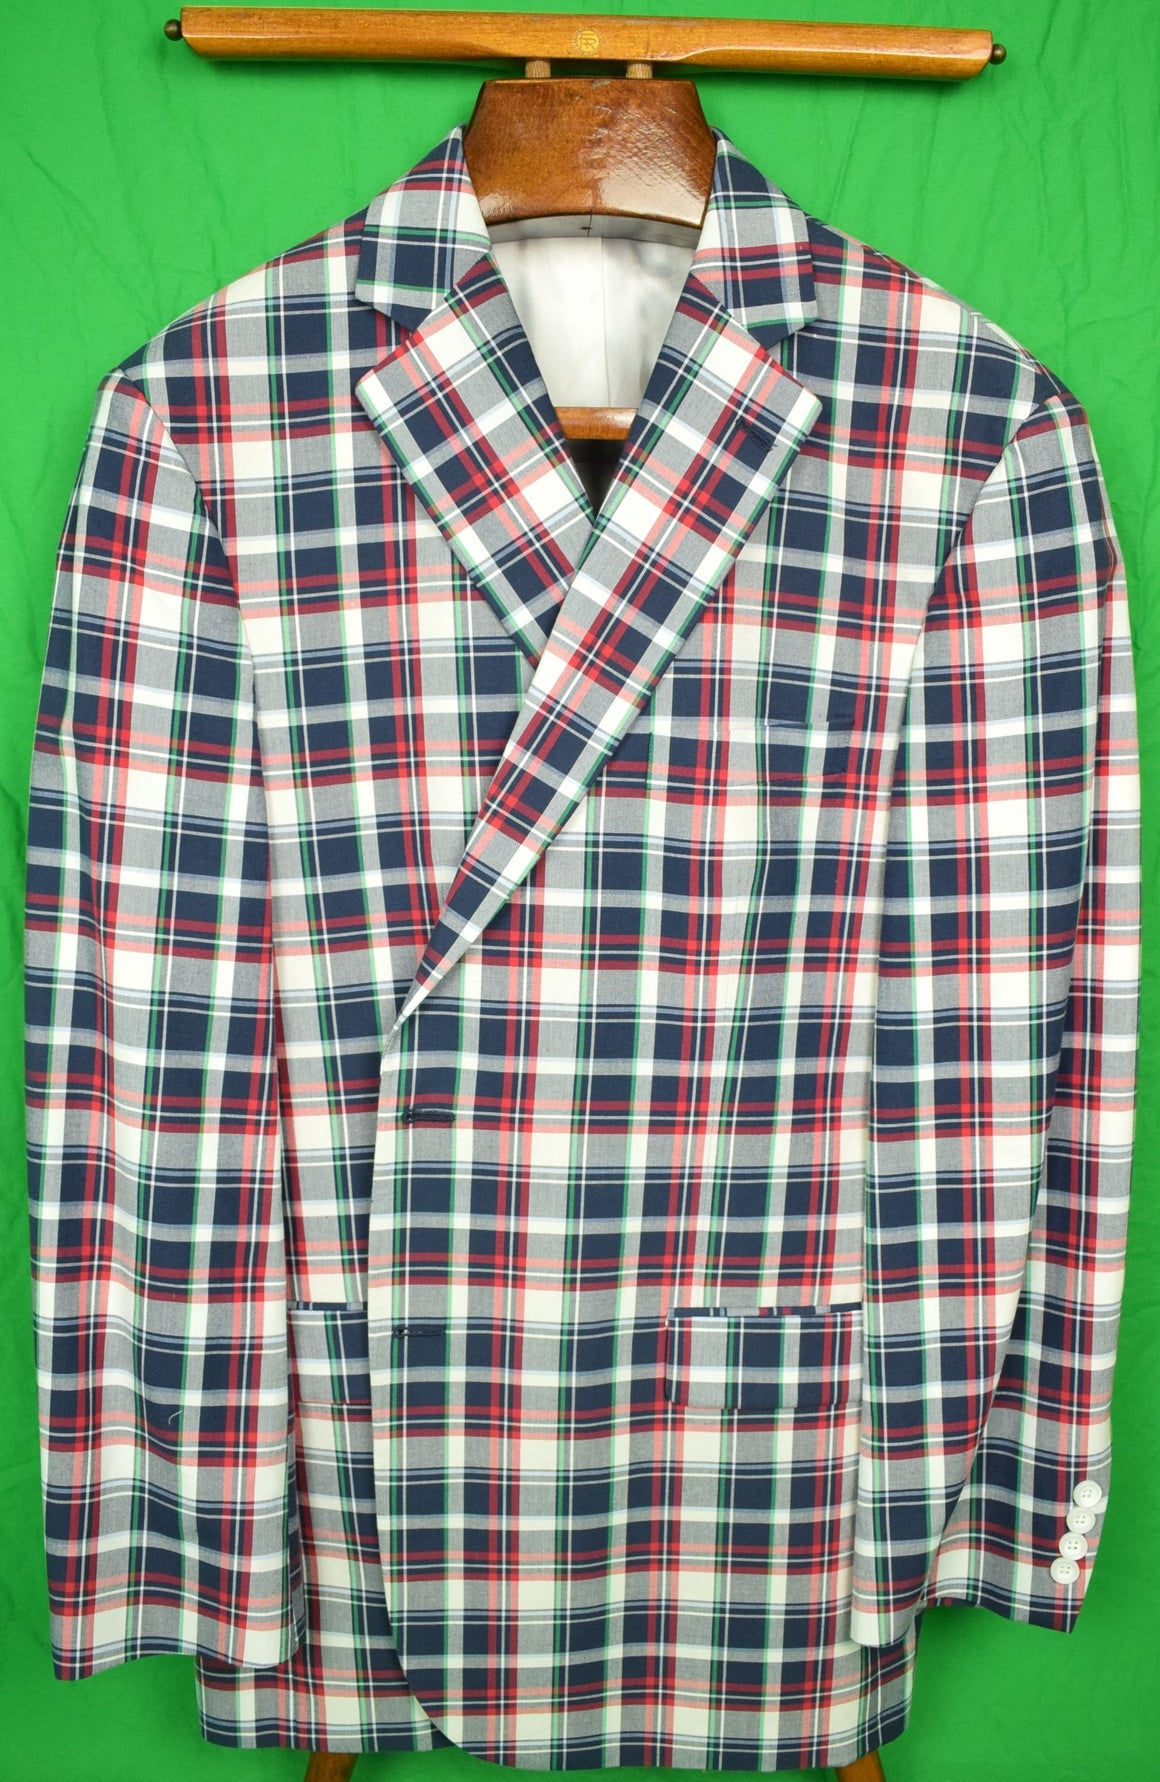 Brooks Brothers '346' Cotton Madras Jacket Sz: 46RG